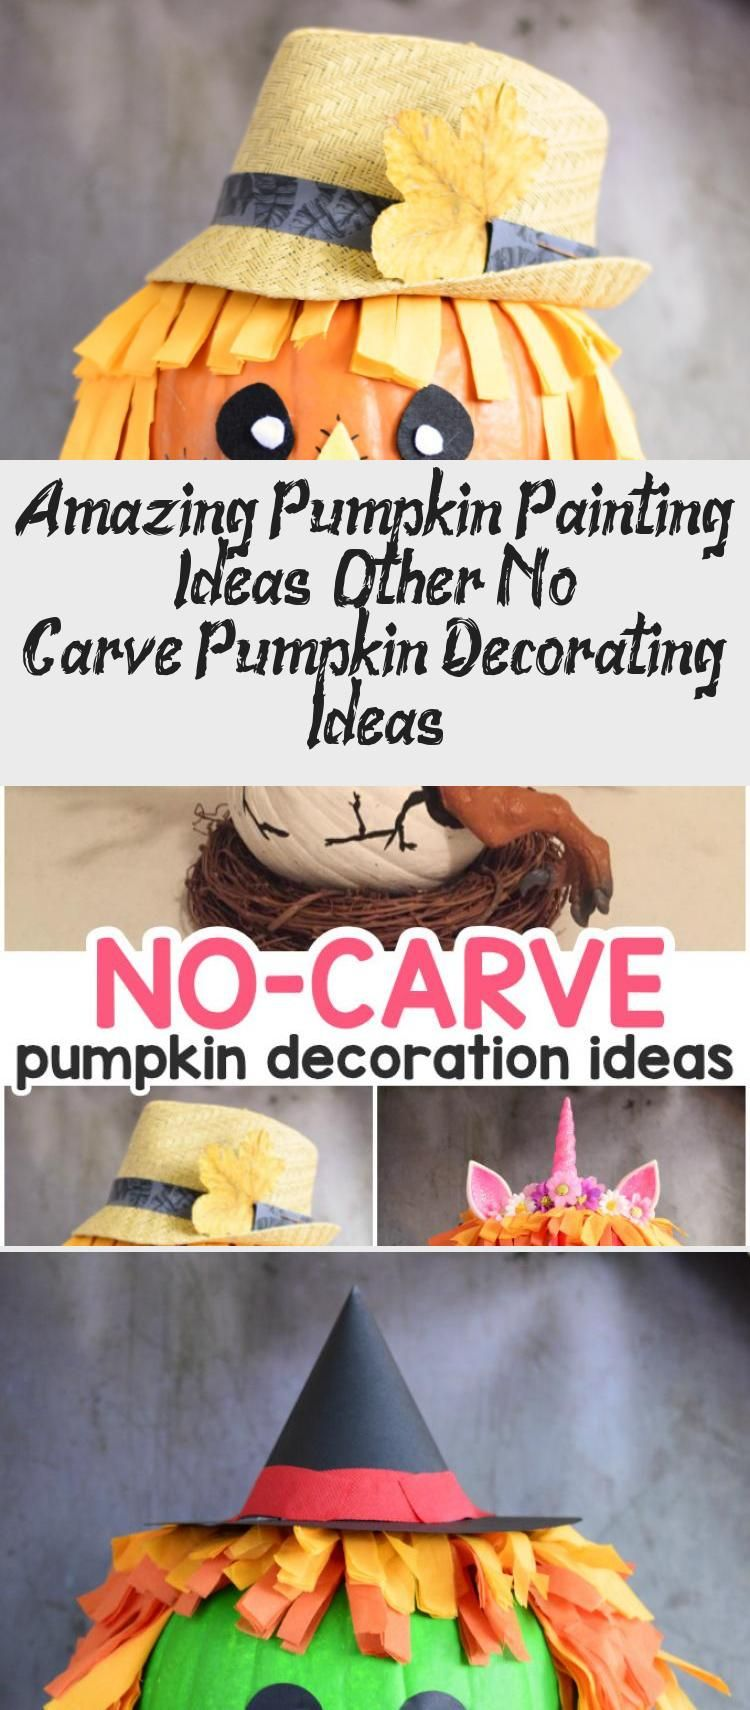 Amazing Pumpkin Painting Ideas & Other No Carve Pumpkin Decorating Ideas #paintingideasGalaxy #paintingideasAcrylic #paintingideasCartoon #Modernpaintingideas #Coolpaintingideas #pumpkinpaintingideas